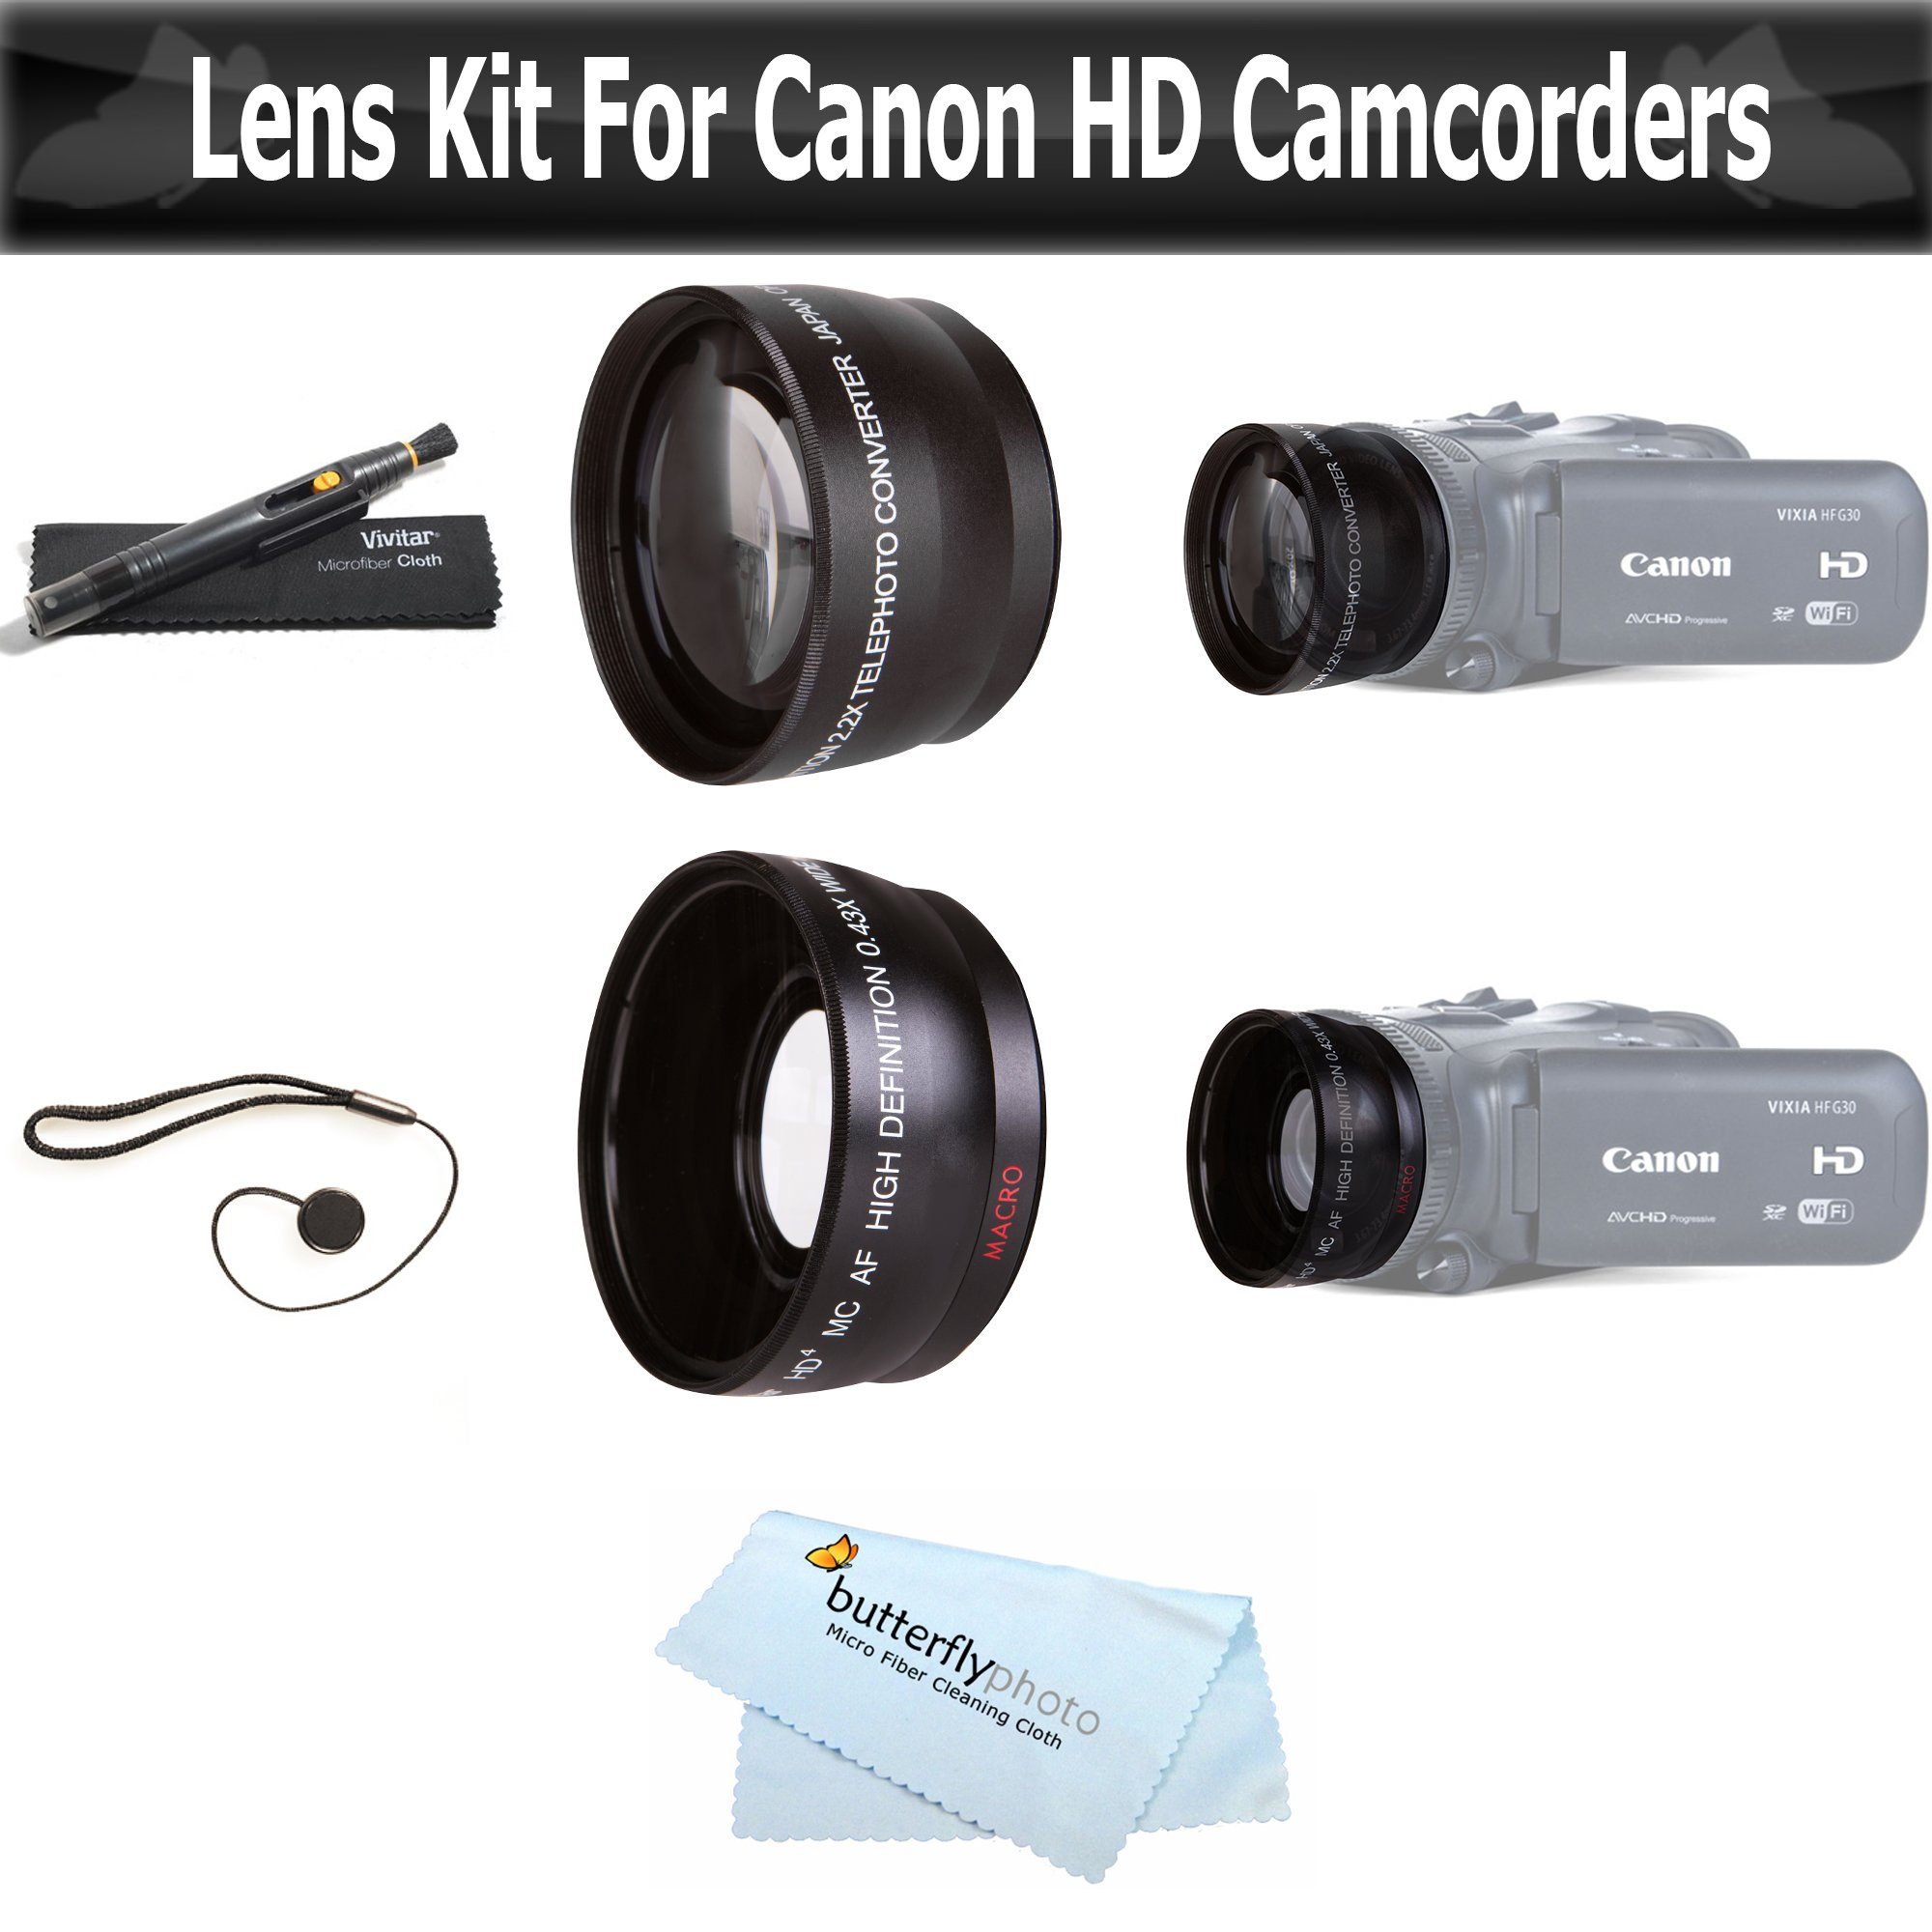 Wide Angle AND Telephoto Lens Kit For CANON VIXIA HF R82, HF R80, HF R800, HF R700, HF R72, HF R70 Camcorder Includes .43x Wide Angle Lens + 2.2x Telephoto Lens + Lens Pen Kit + Much More by ButterflyPhoto